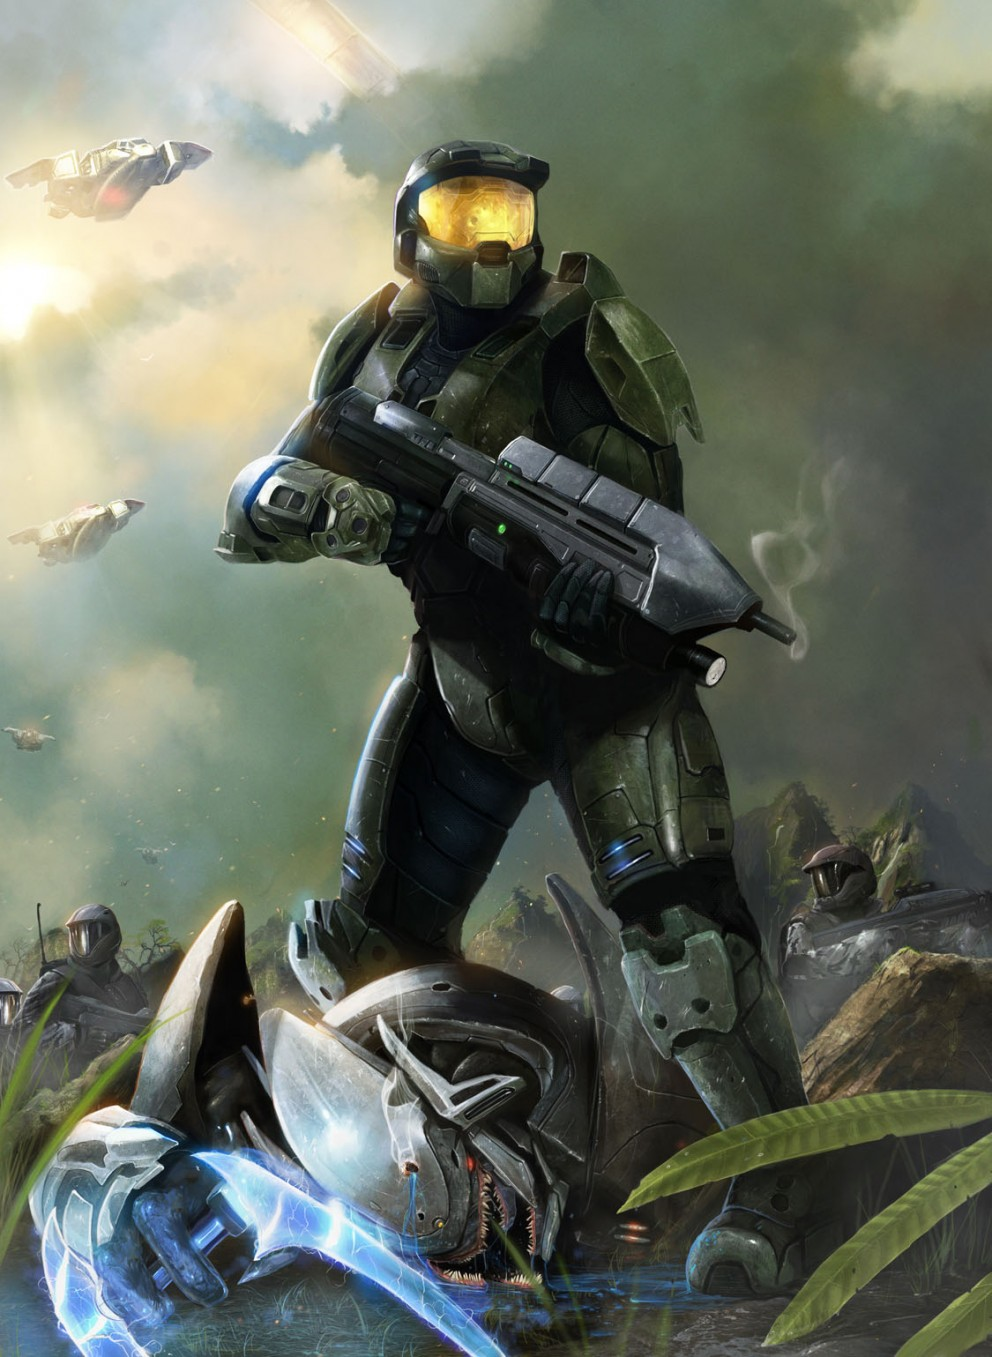 Halo__Master_Chief___by_adonihs - CoolVibe – Digital Art & Inspiration